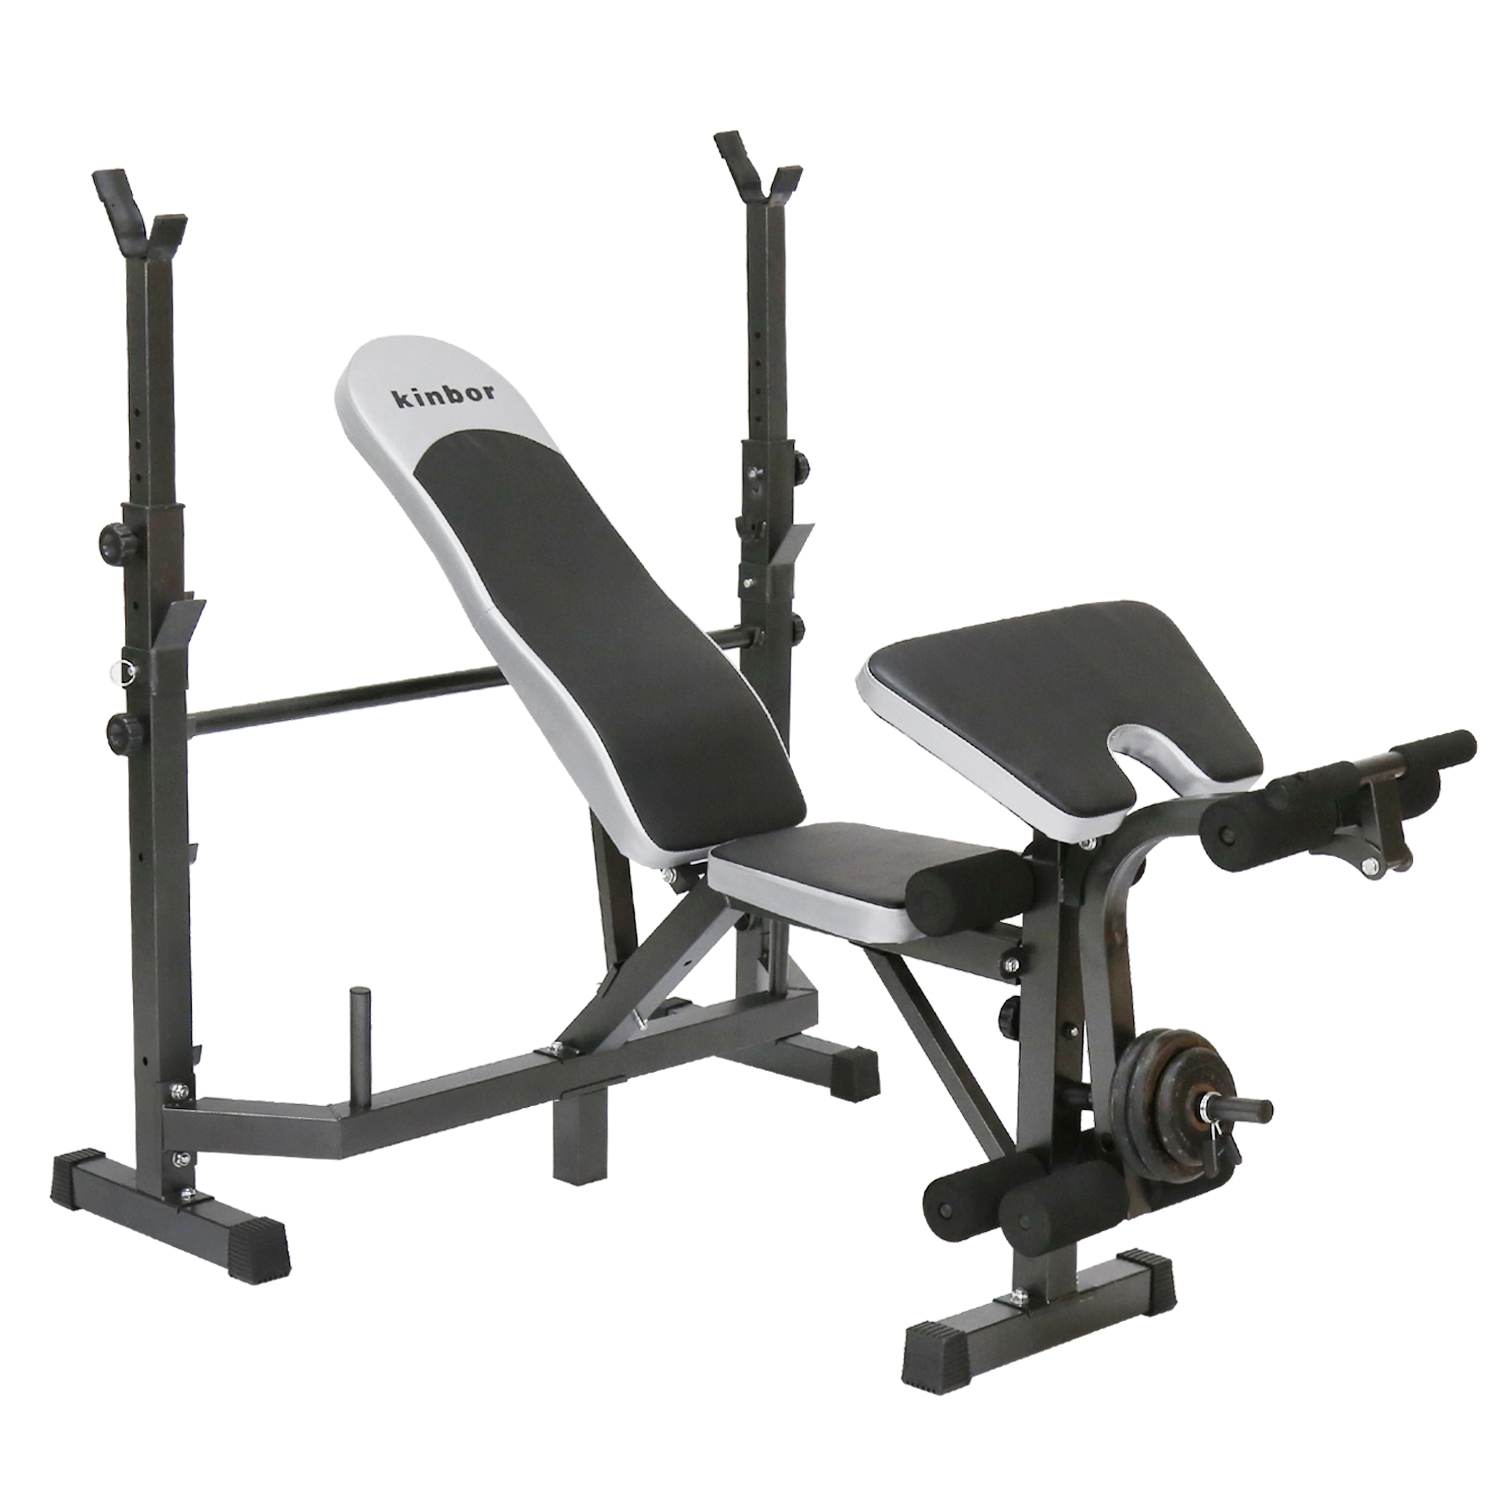 Kinbor Multi-station Weight Bench Adjustable Workout Bench with Leg Extension Incline Flat Decline Sit Up Fitness... by